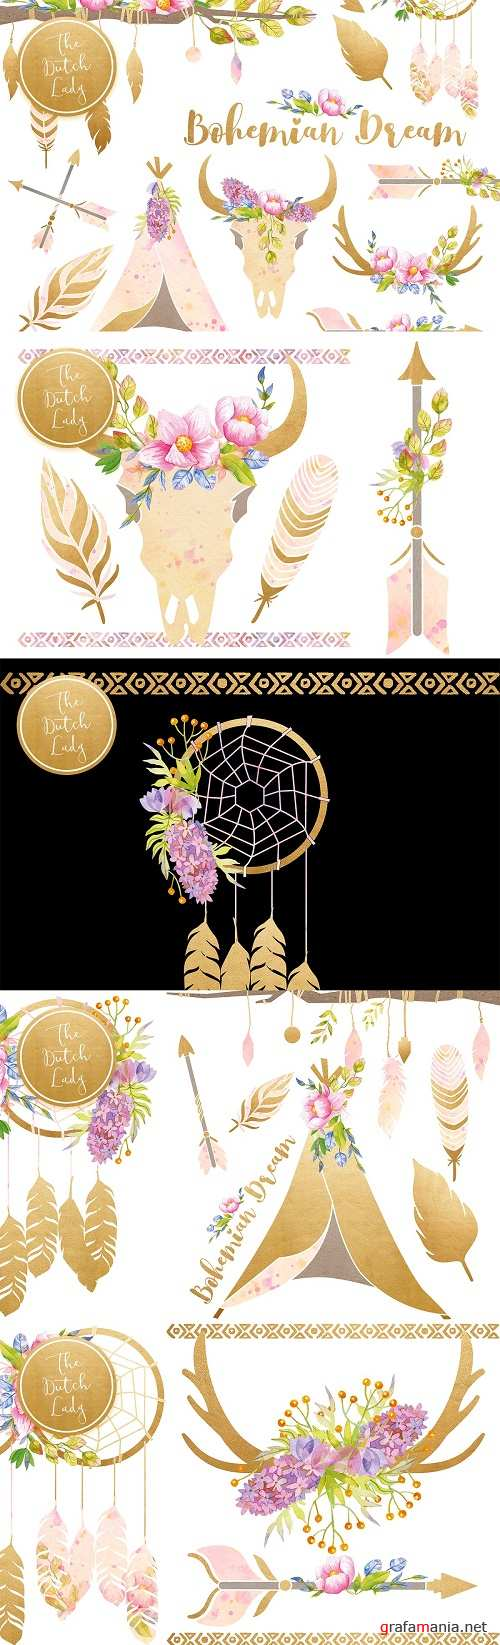 Bohemian Dream Clipart Set - 3911210